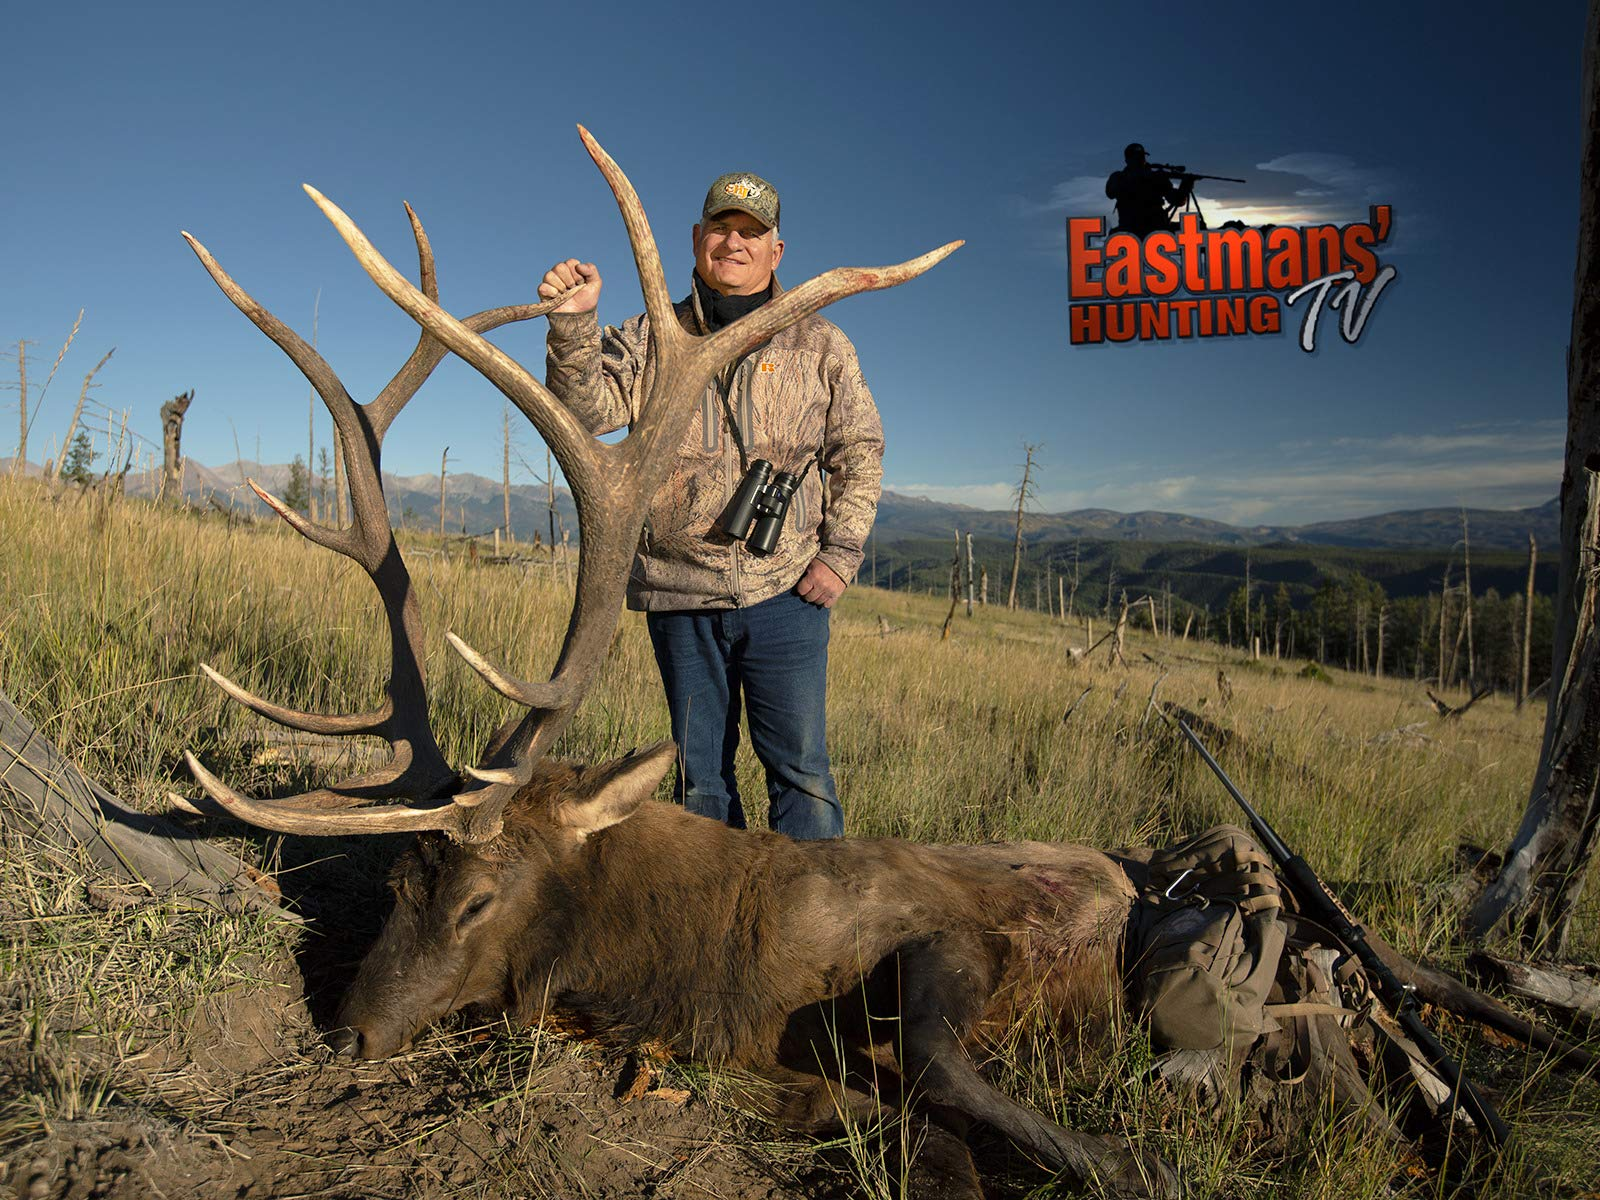 Amazon.com: Eastmans Hunting TV: Guy Eastman, Ike Eastman ...